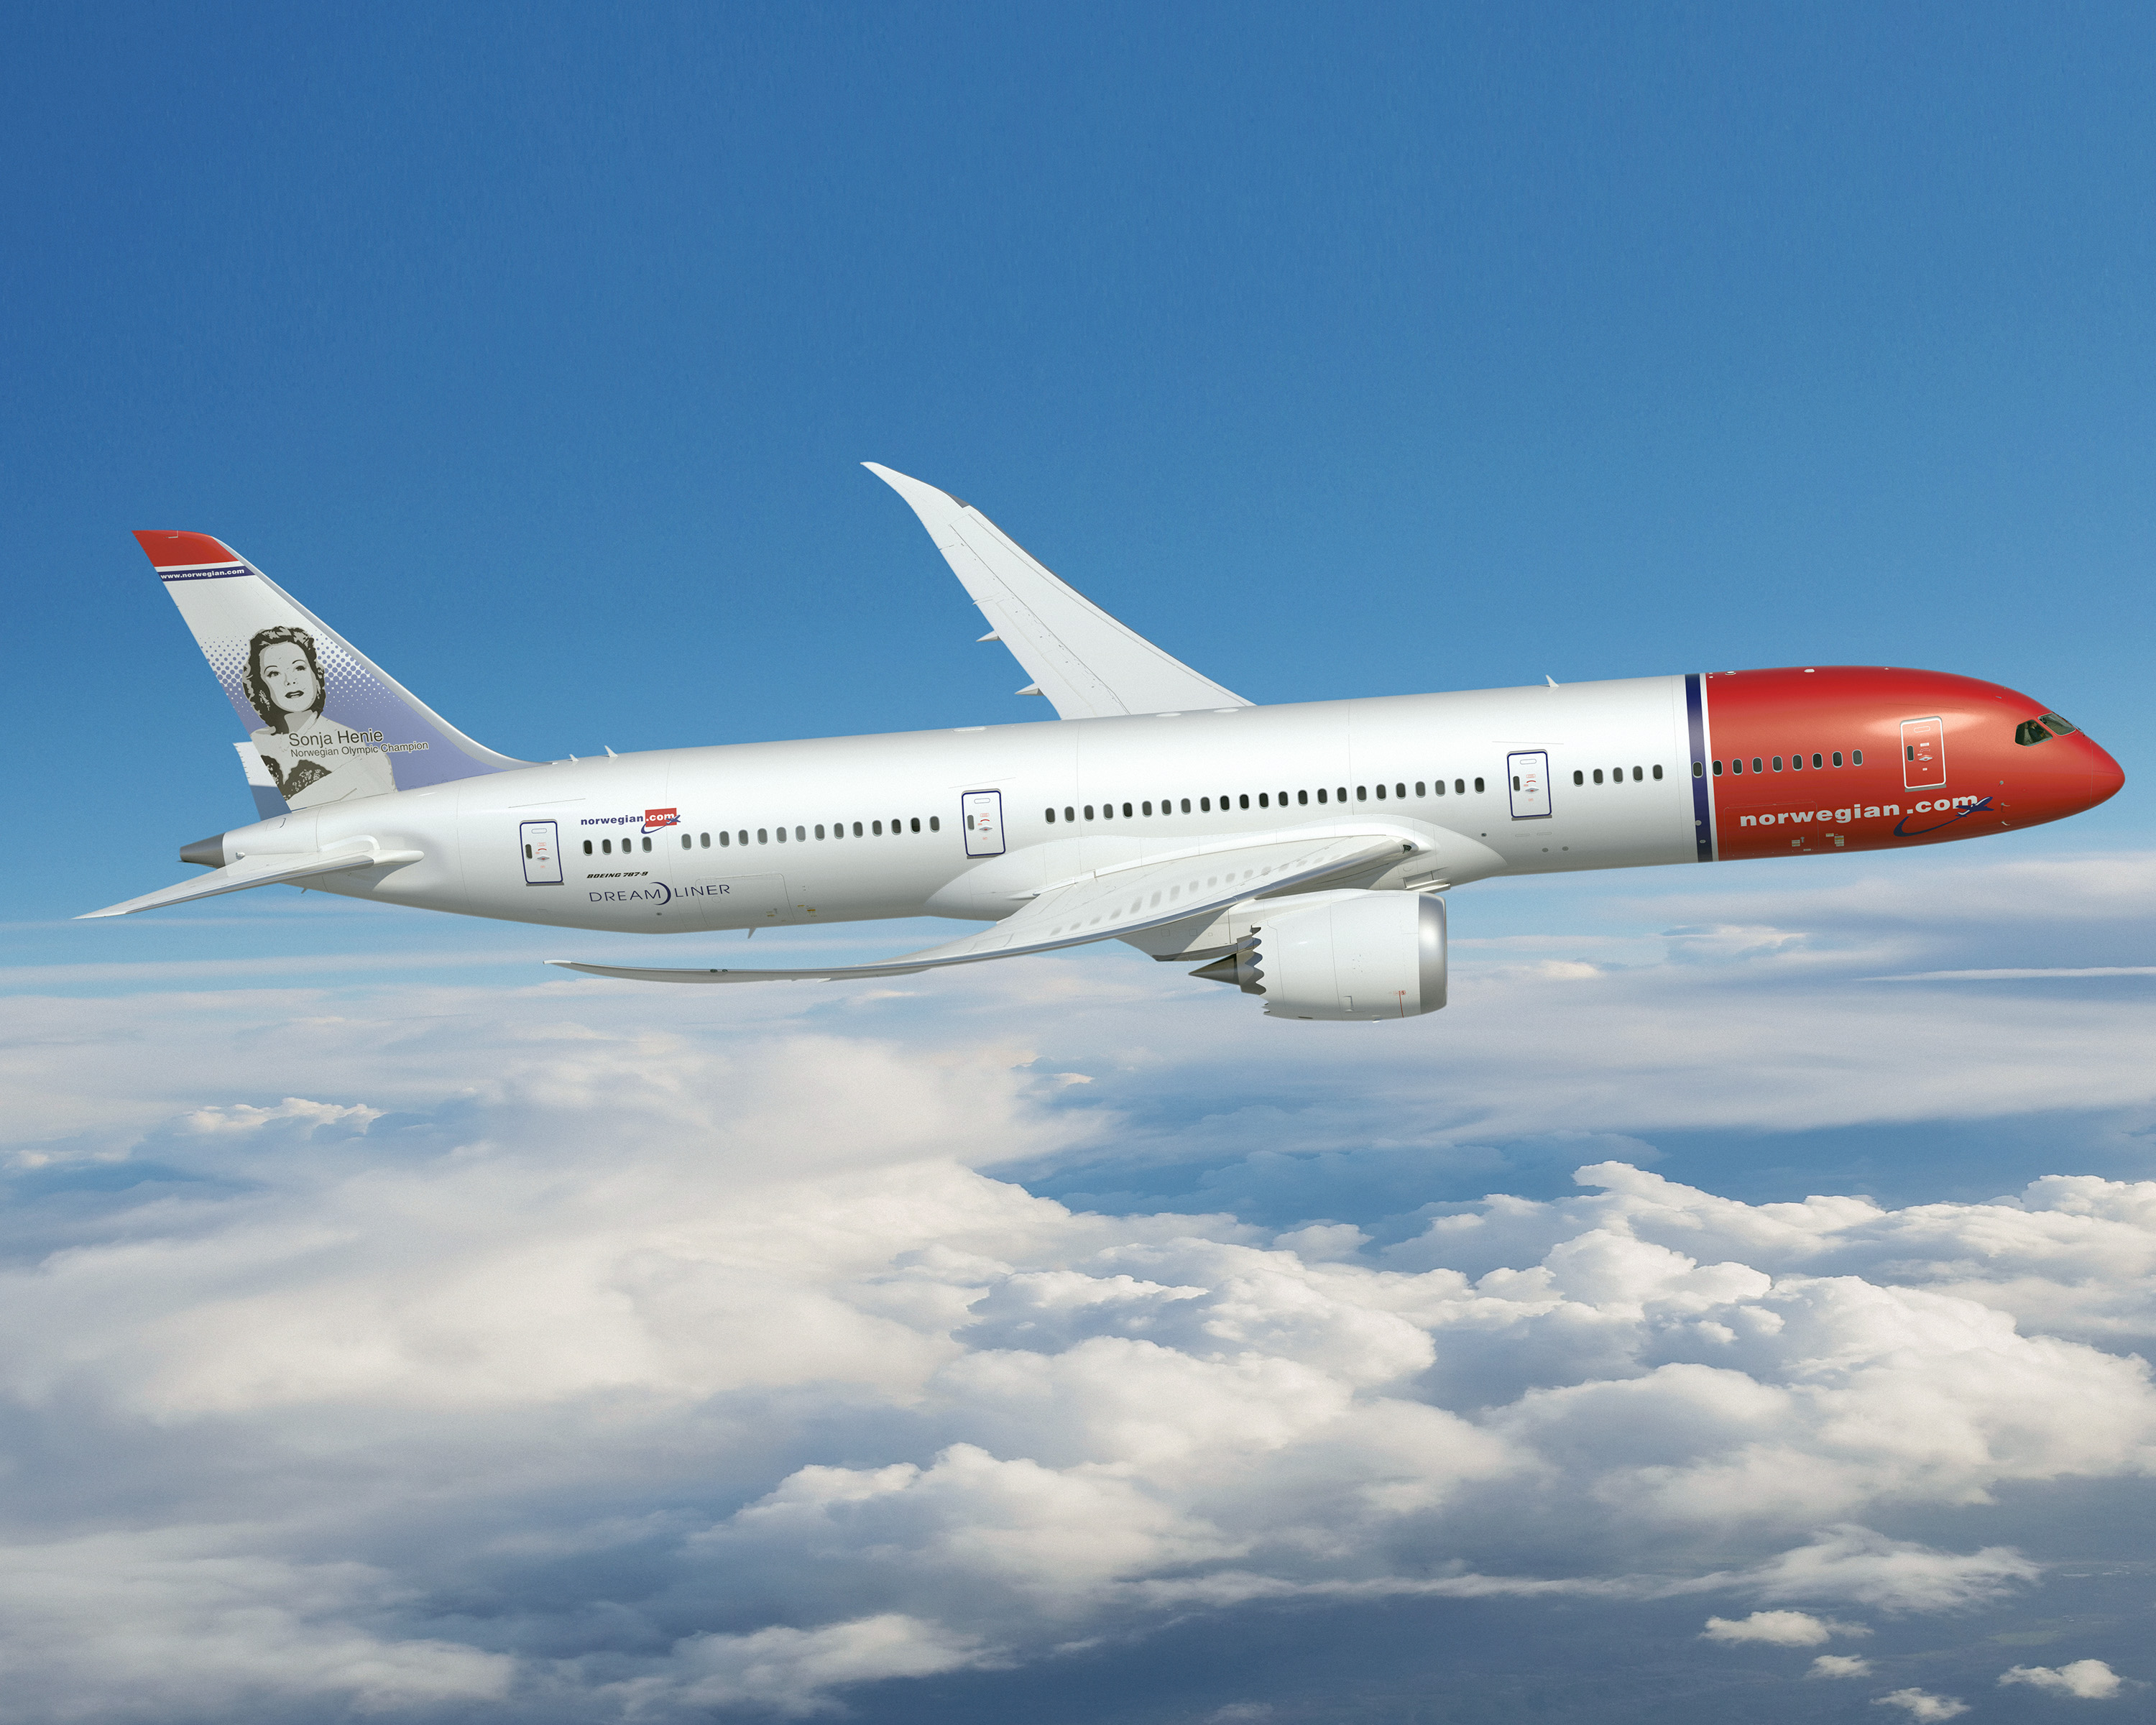 Norwegian 787-9. Credit: Creative Commons - Norwegian